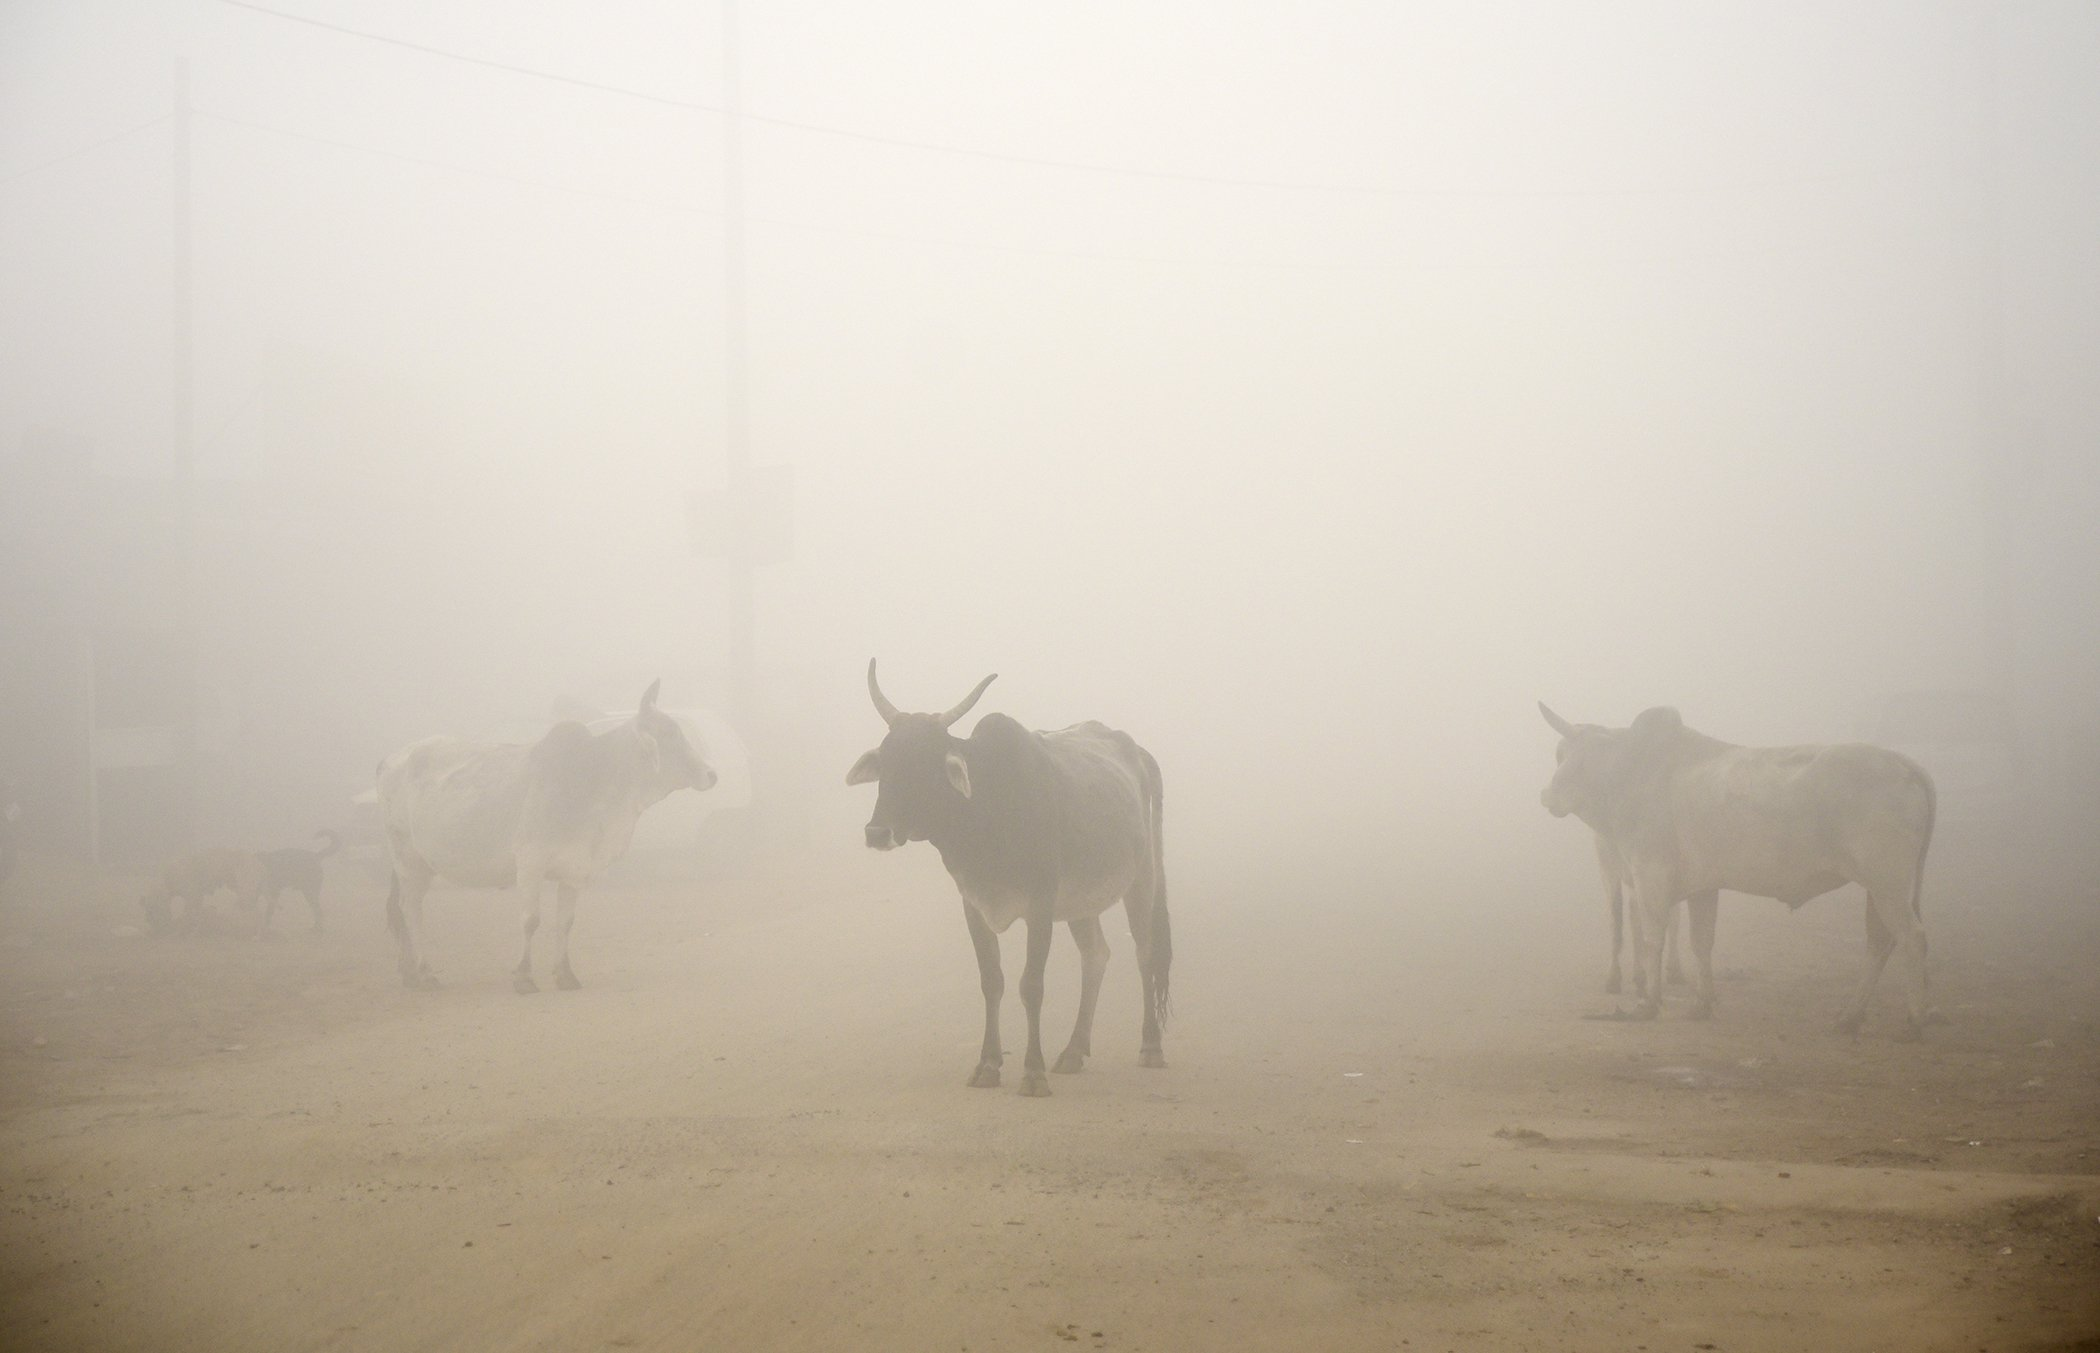 India-Pollution-Smog-Winter.jpg